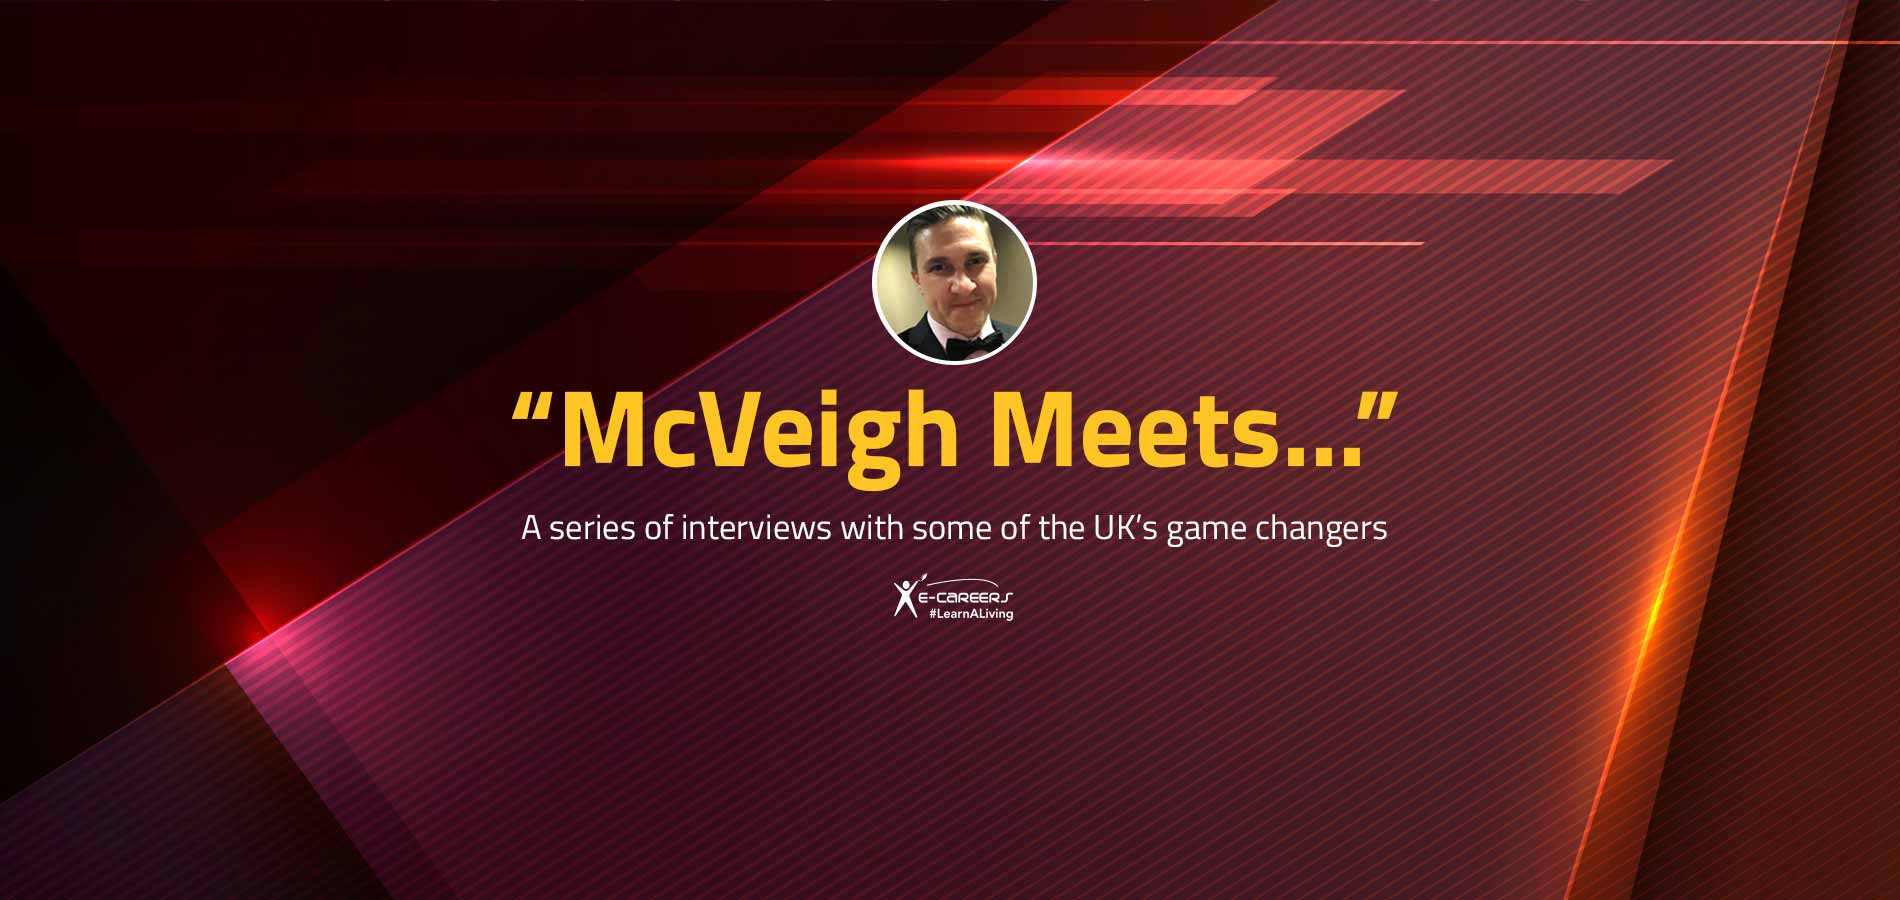 Paul McVeigh Presents - 'McVeigh Meets..' with UK's Game Changers